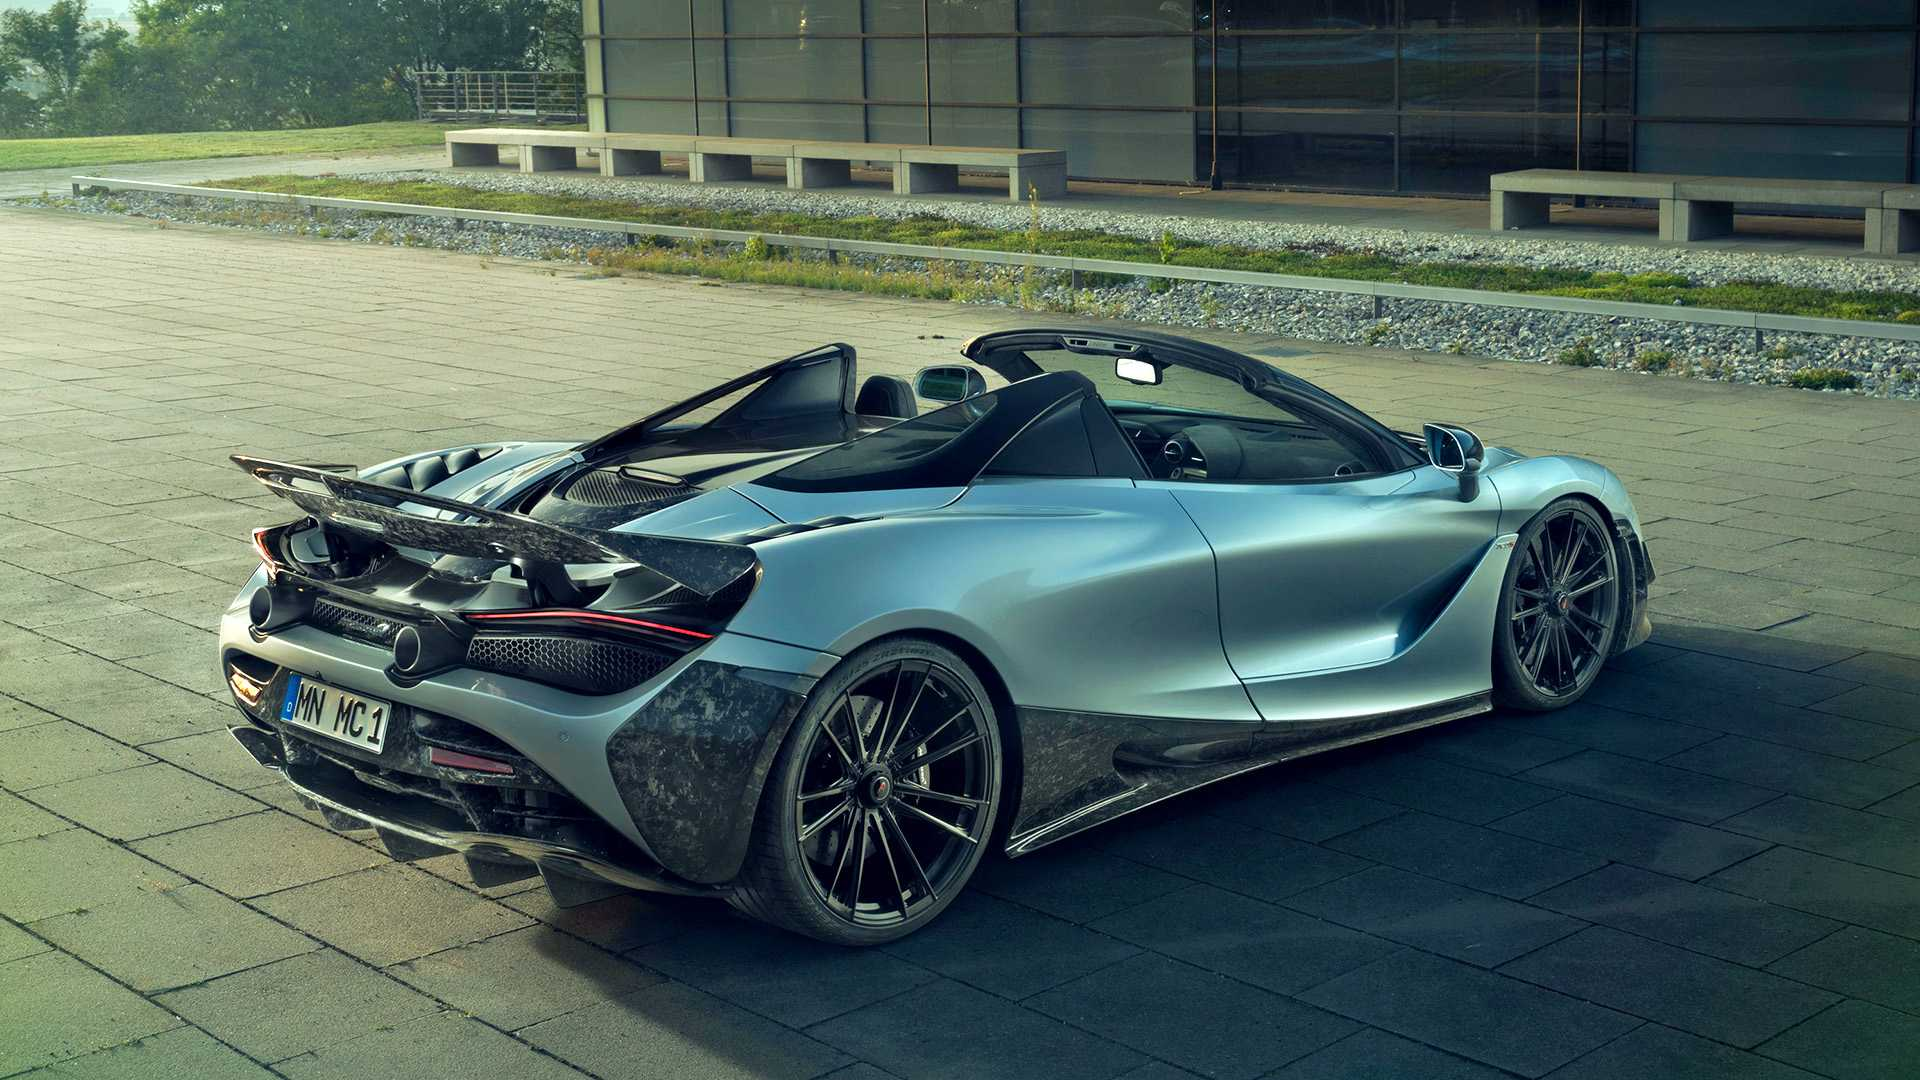 2019 NOVITEC McLaren 720S Spider Rear Three-Quarter Wallpapers (7)